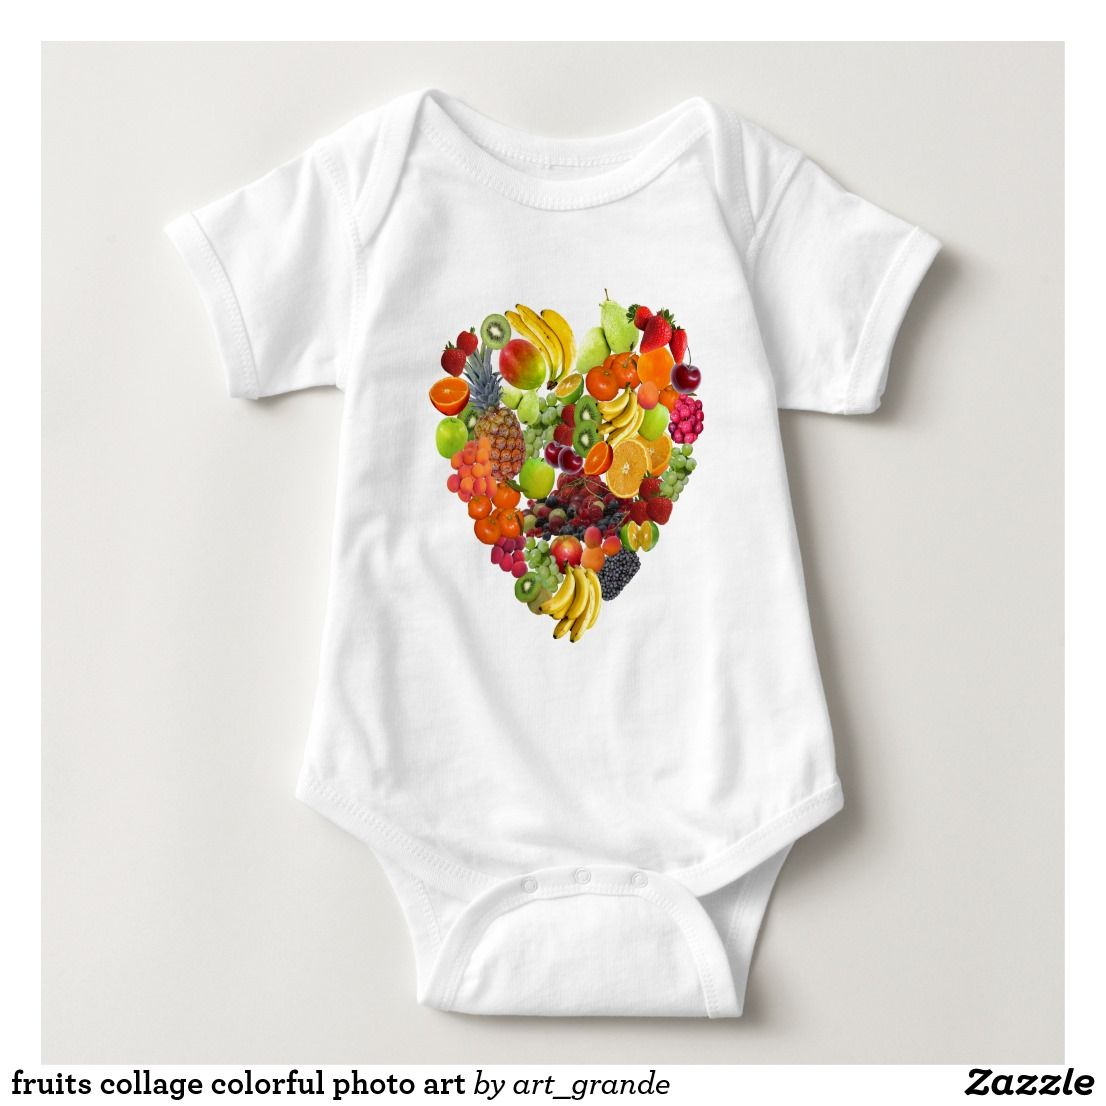 fruits collage colorful photo art baby bodysuit